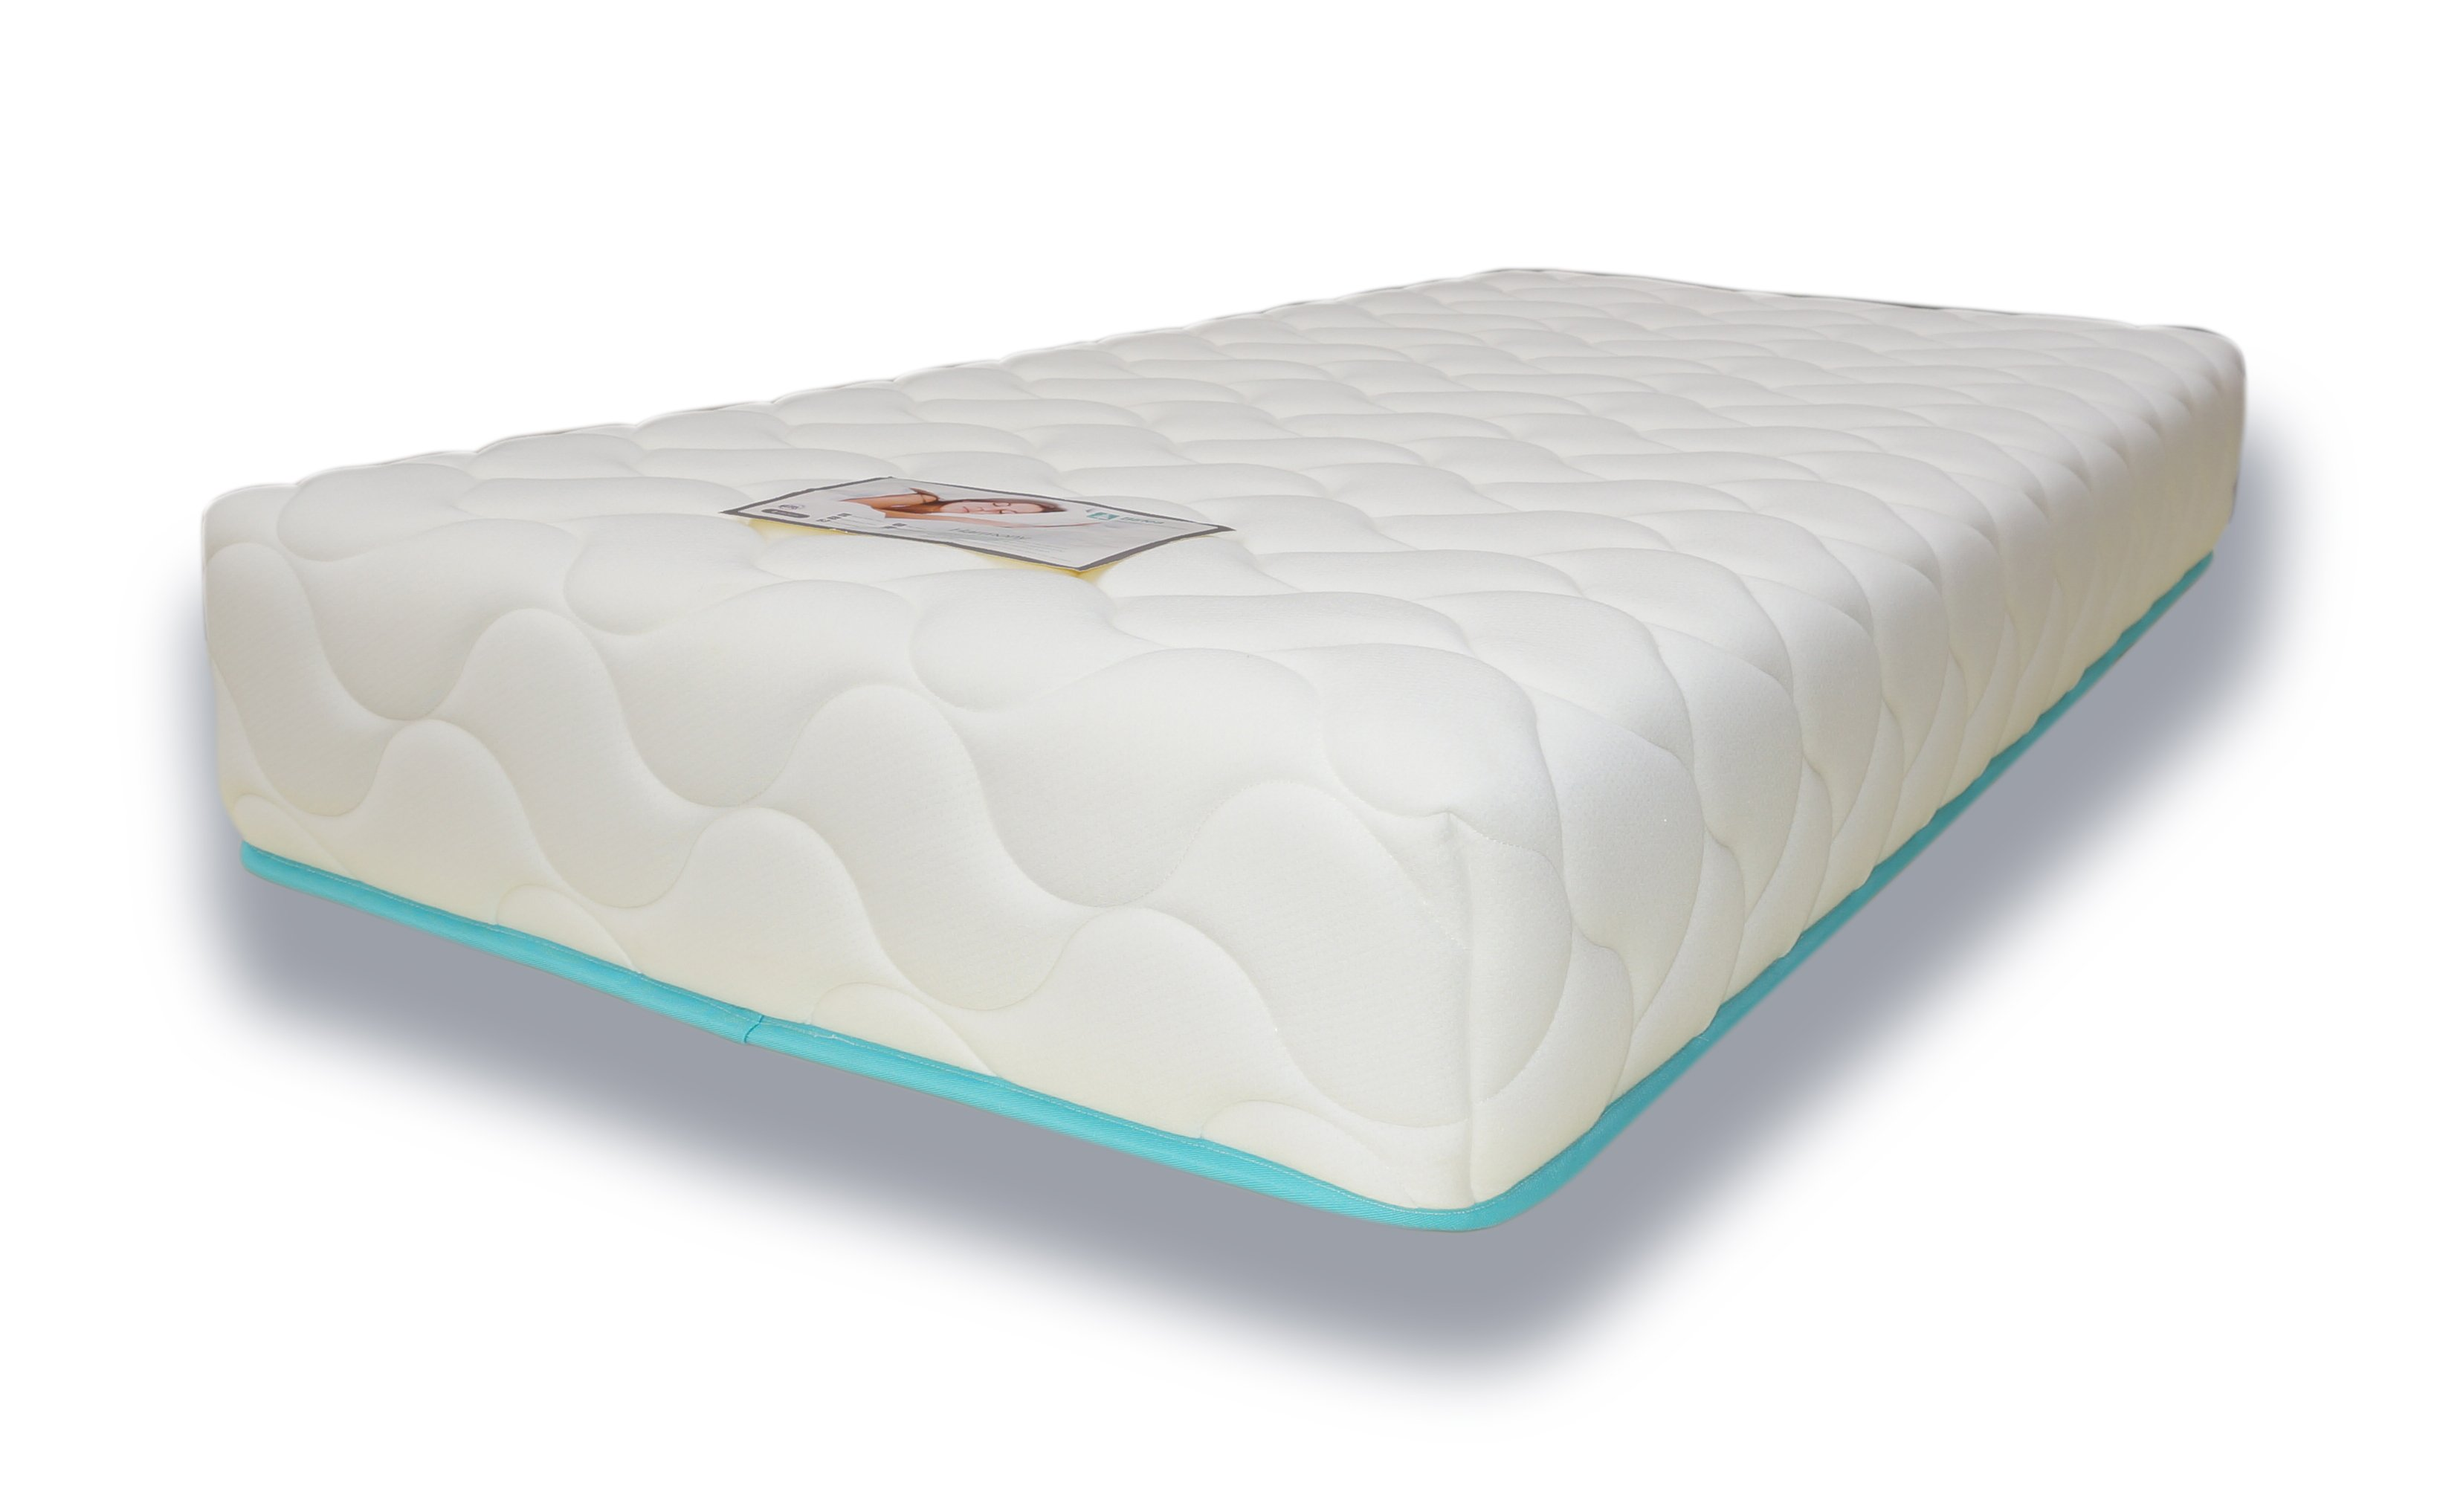 Breasley Mattress Review Breasley And Kayflex Mattresses In East Ayrshire